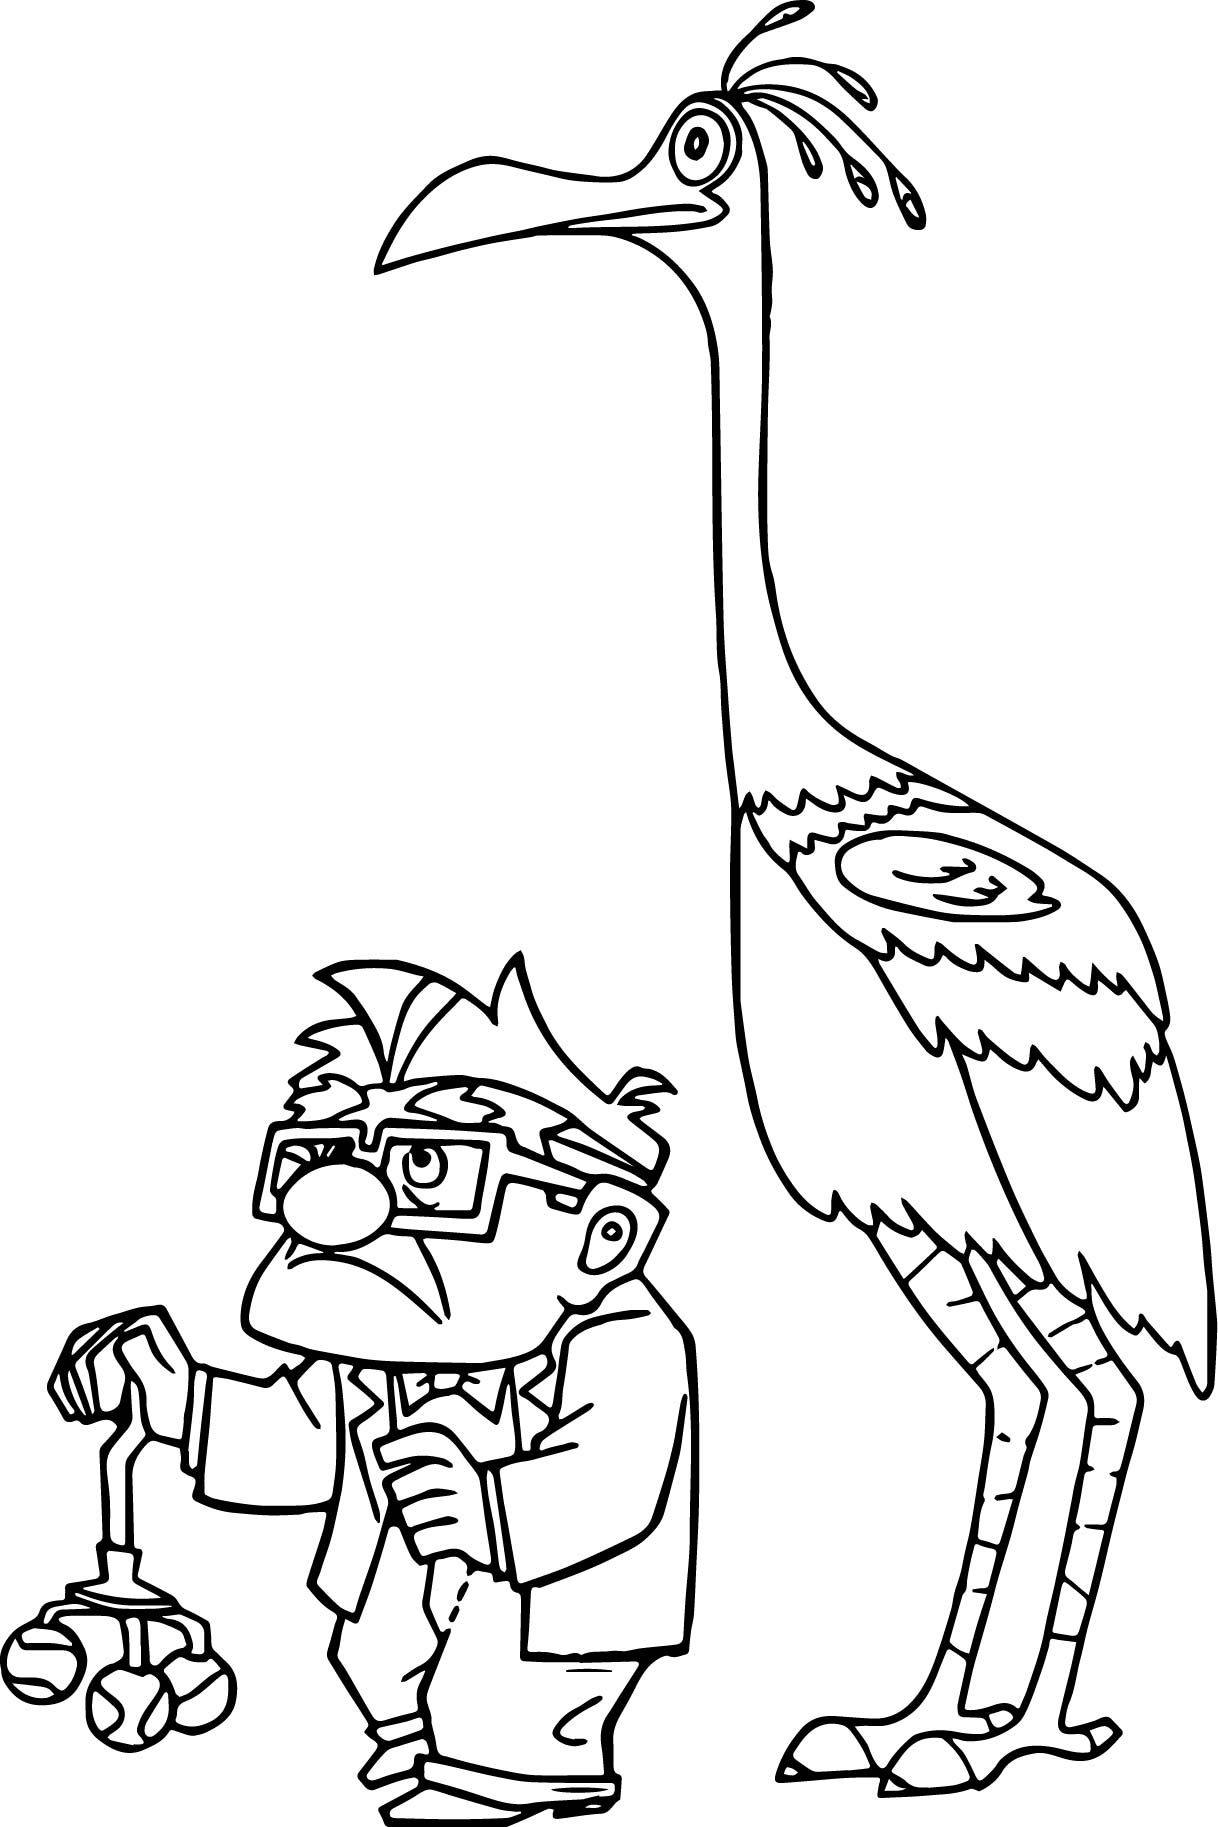 Disney Pixar Up Carl Fredricksen And Kevin Coloring Pages Up Coloring Pages